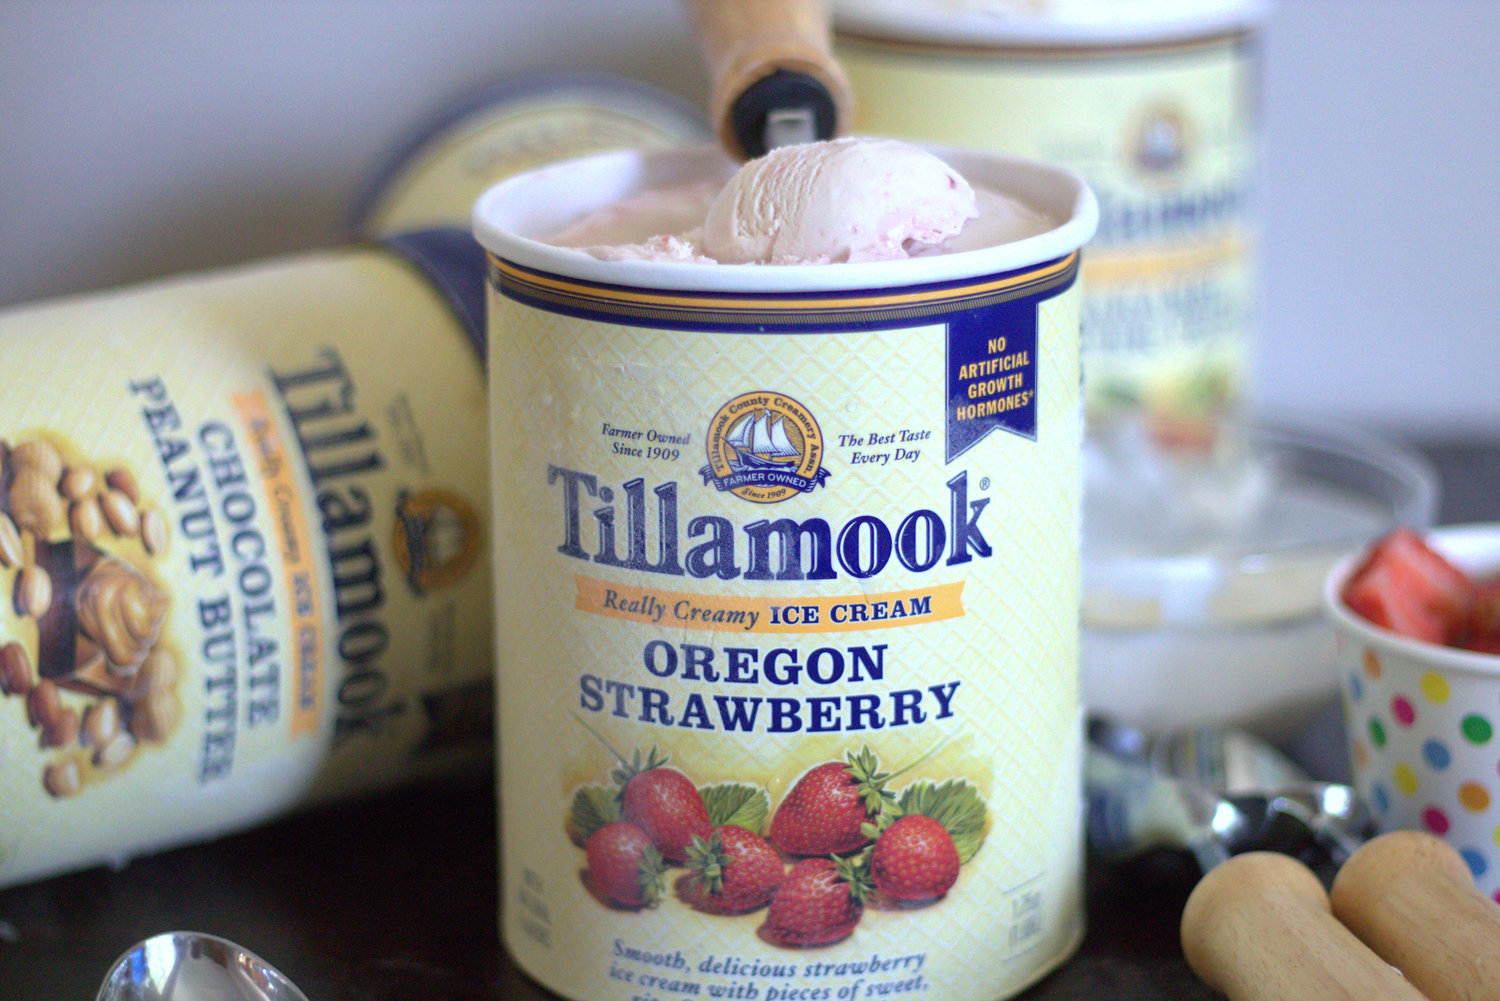 5 Tips For The Perfect Ice Cream Social With Tillamook